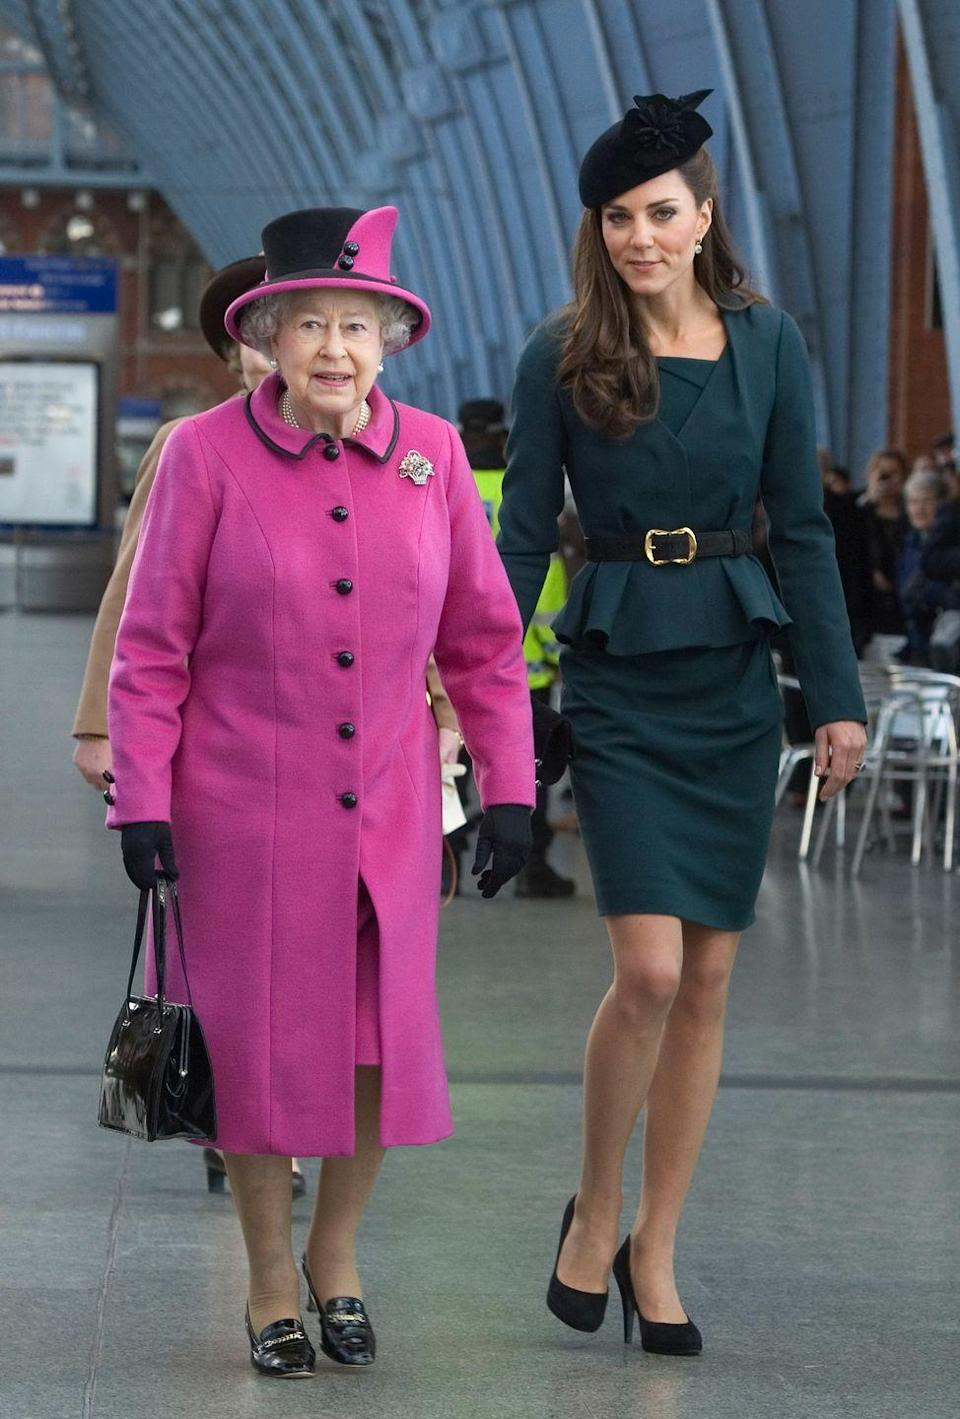 <p>Kate joined Queen Elizabeth II for her first official engagement without Will during the Queen's Diamond Jubilee tour. Kate wore dark green separates from L.K. Bennett. Here she is at King's Cross St. Pancras Station in London. </p>